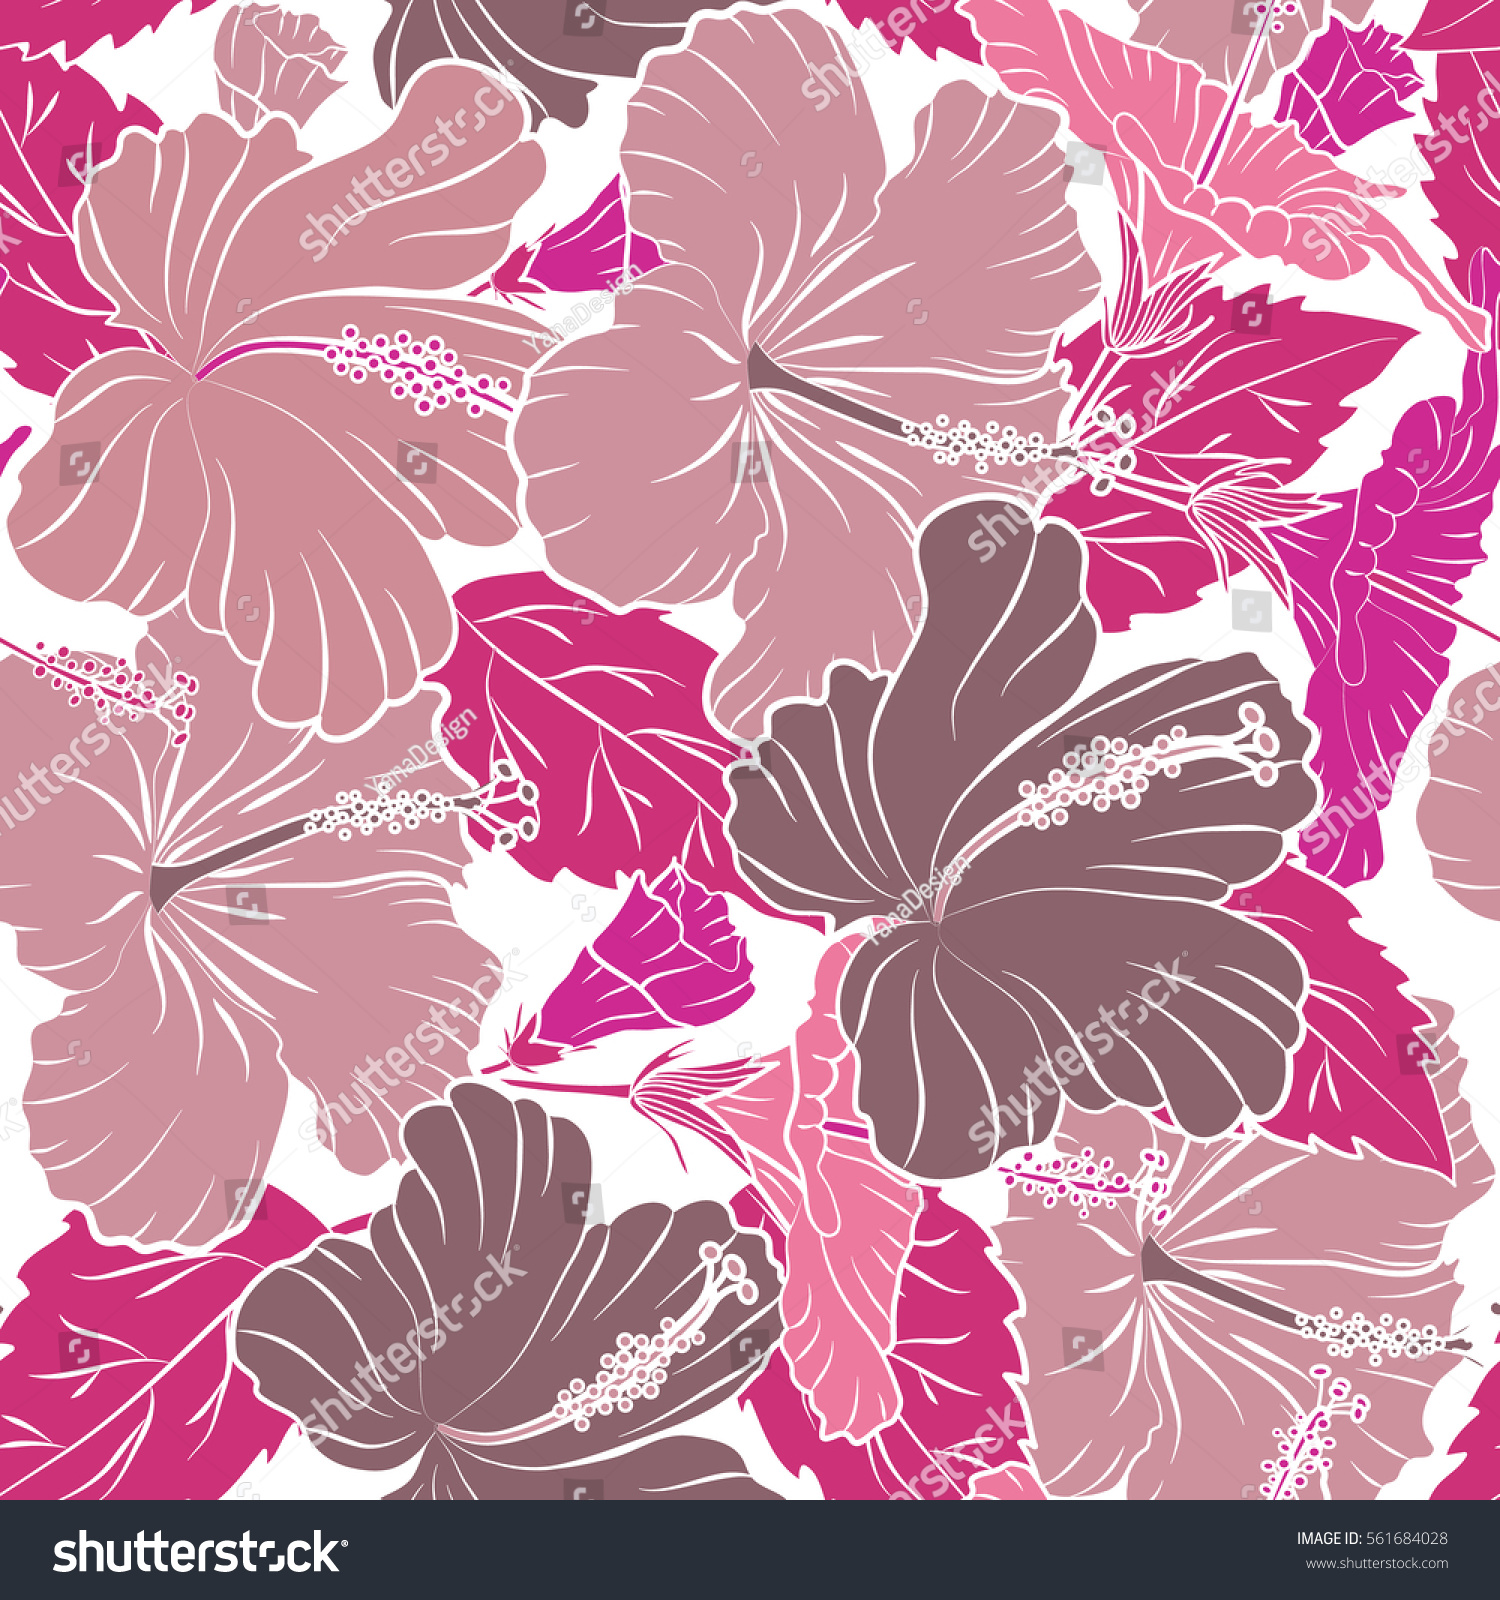 Floral Seamless Pattern With Hibiscus Flowers Design In Magenta And